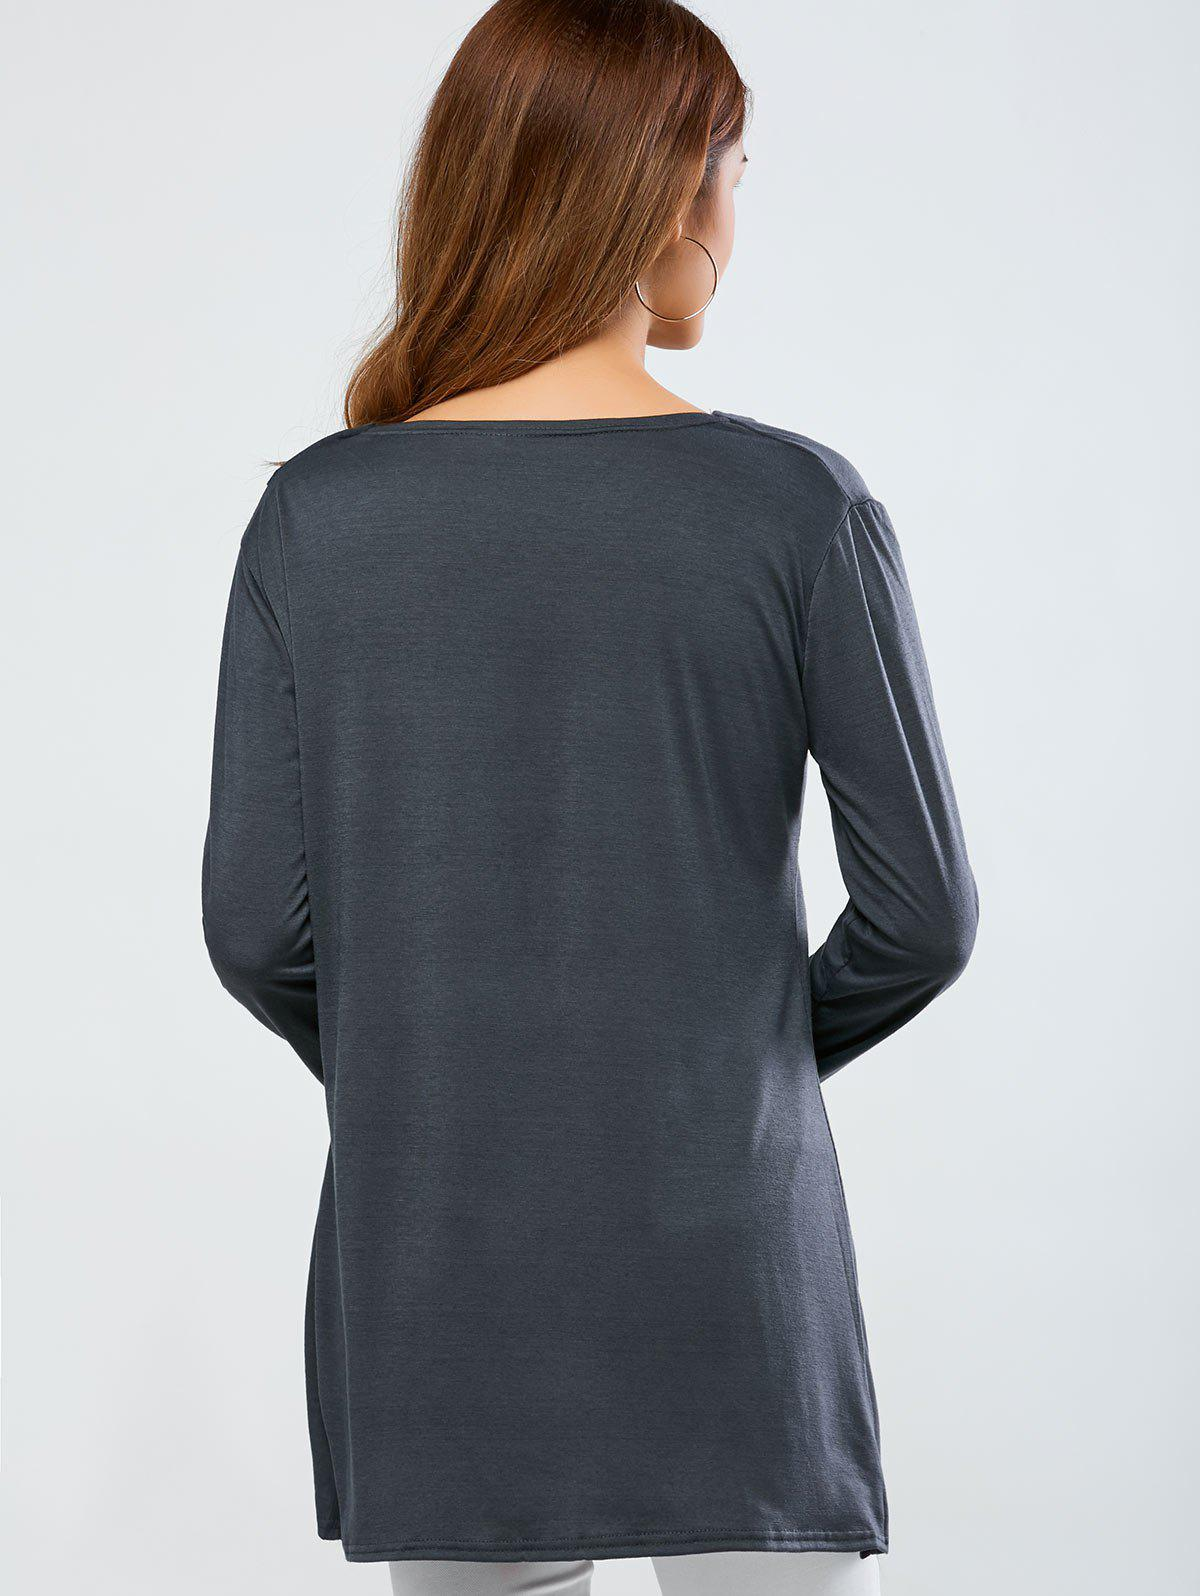 Cowl Neck One Breasted T-Shirt - GRAY 2XL